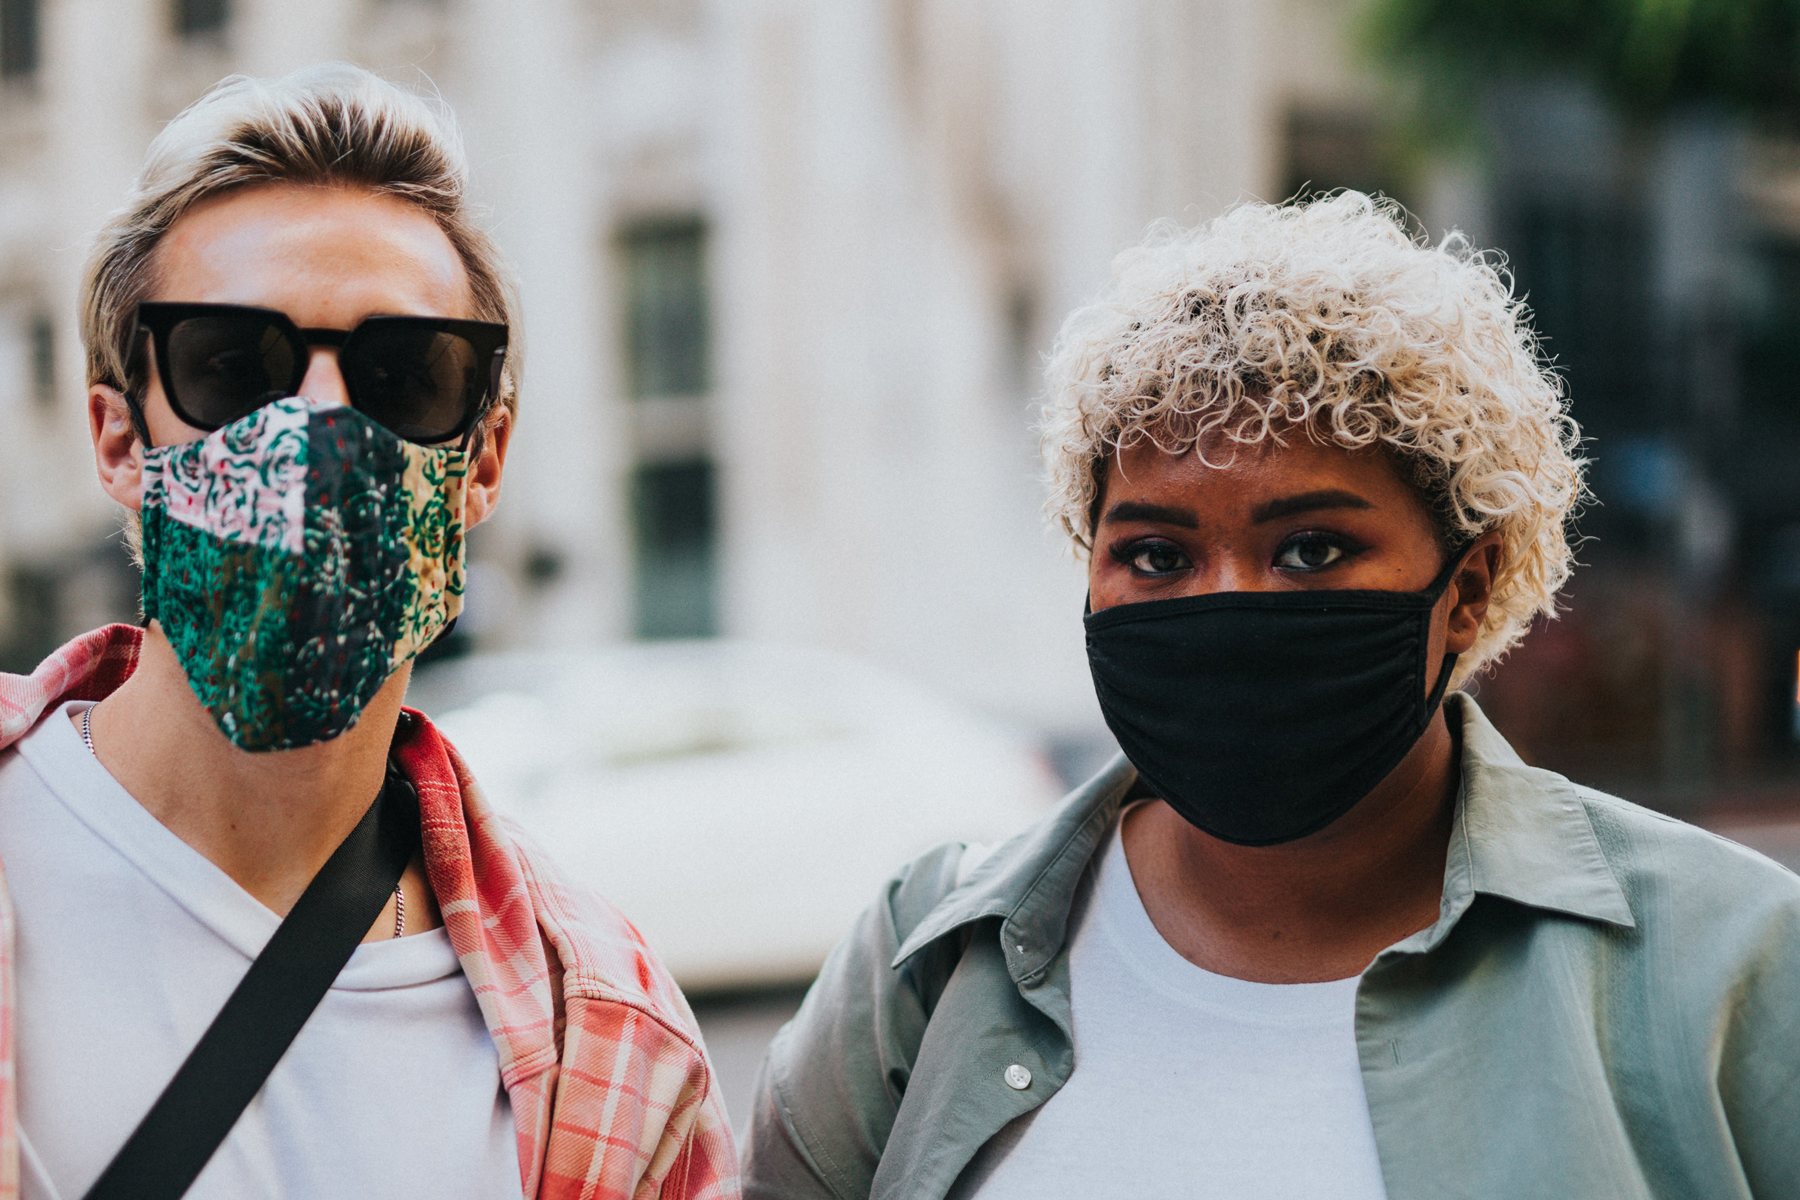 In an article about COVID-19 mourning, two people in face masks